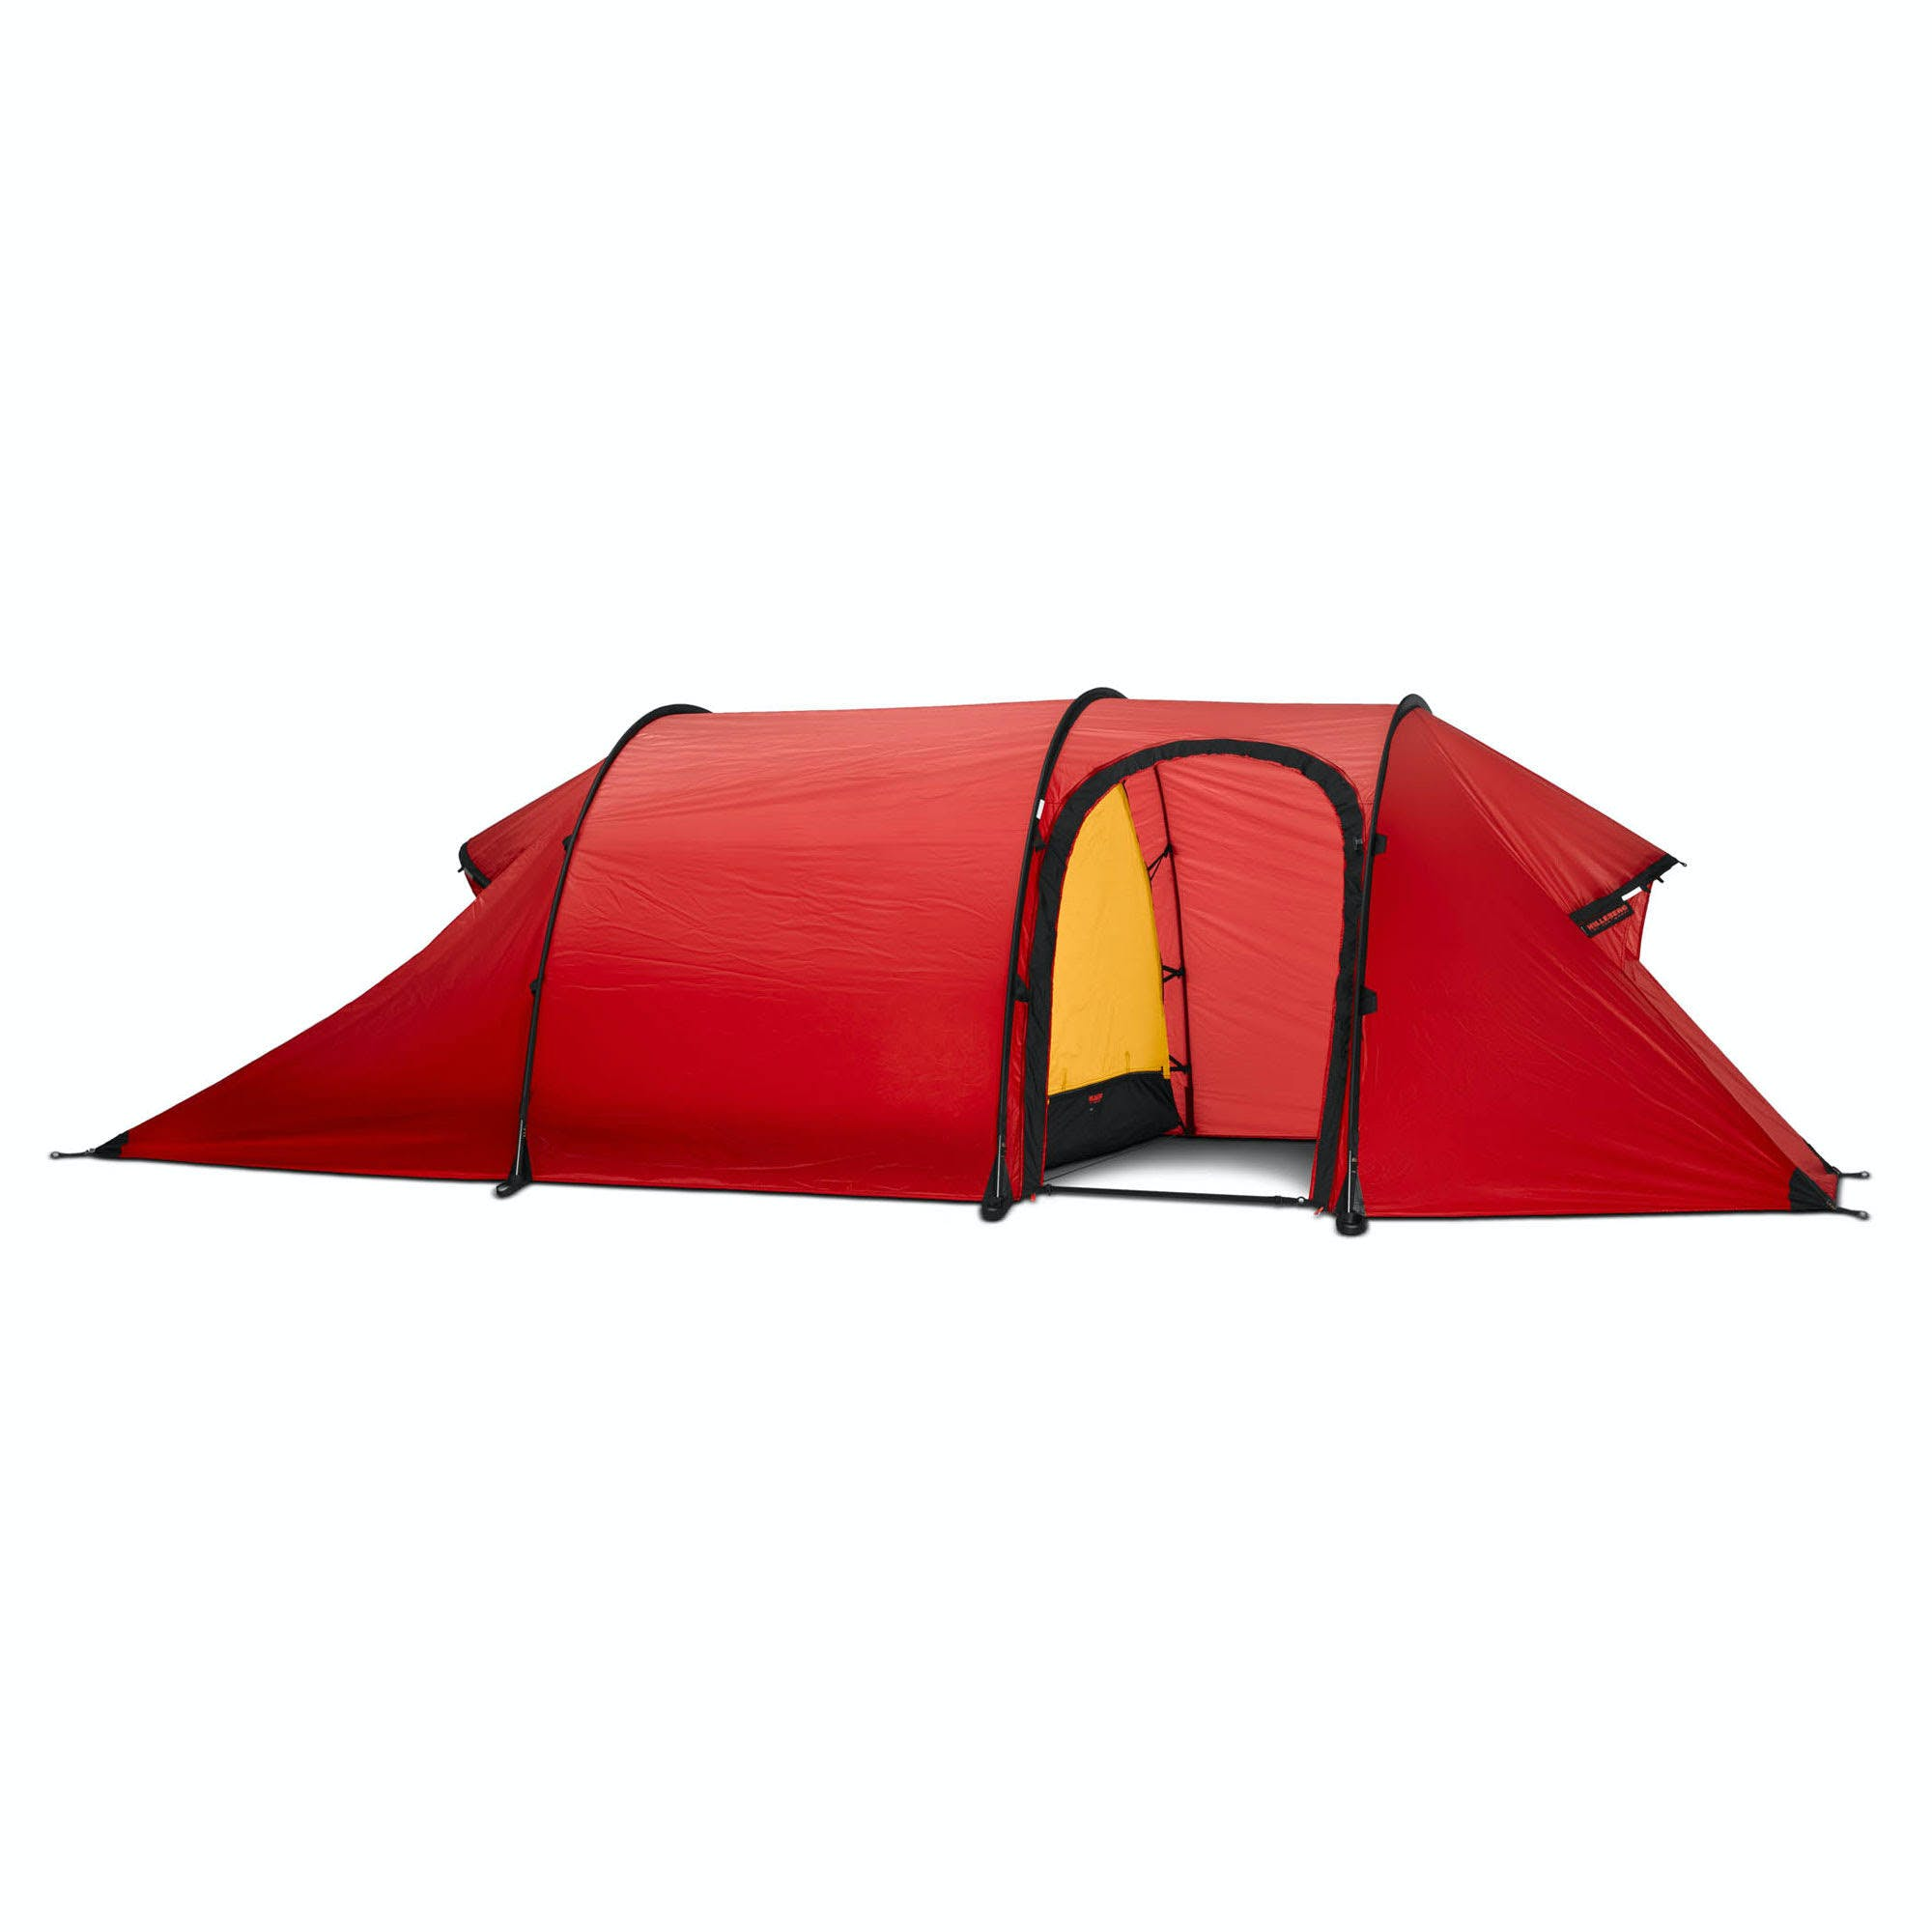 Hilleberg Nammatj GT 3 Person Tent Red